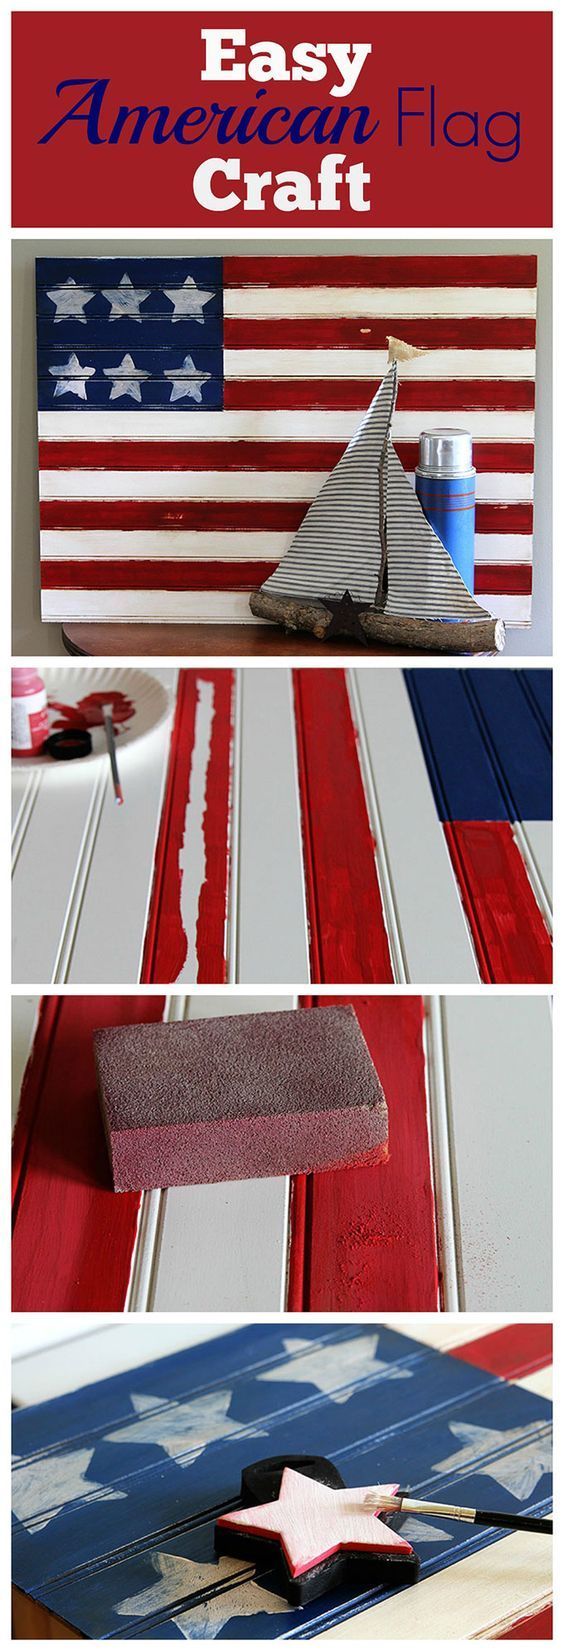 This American flag craft project is super cute and EASY to make . A quick patriotic DIY project for your 4th of July home decor. Did I mention it is easy?